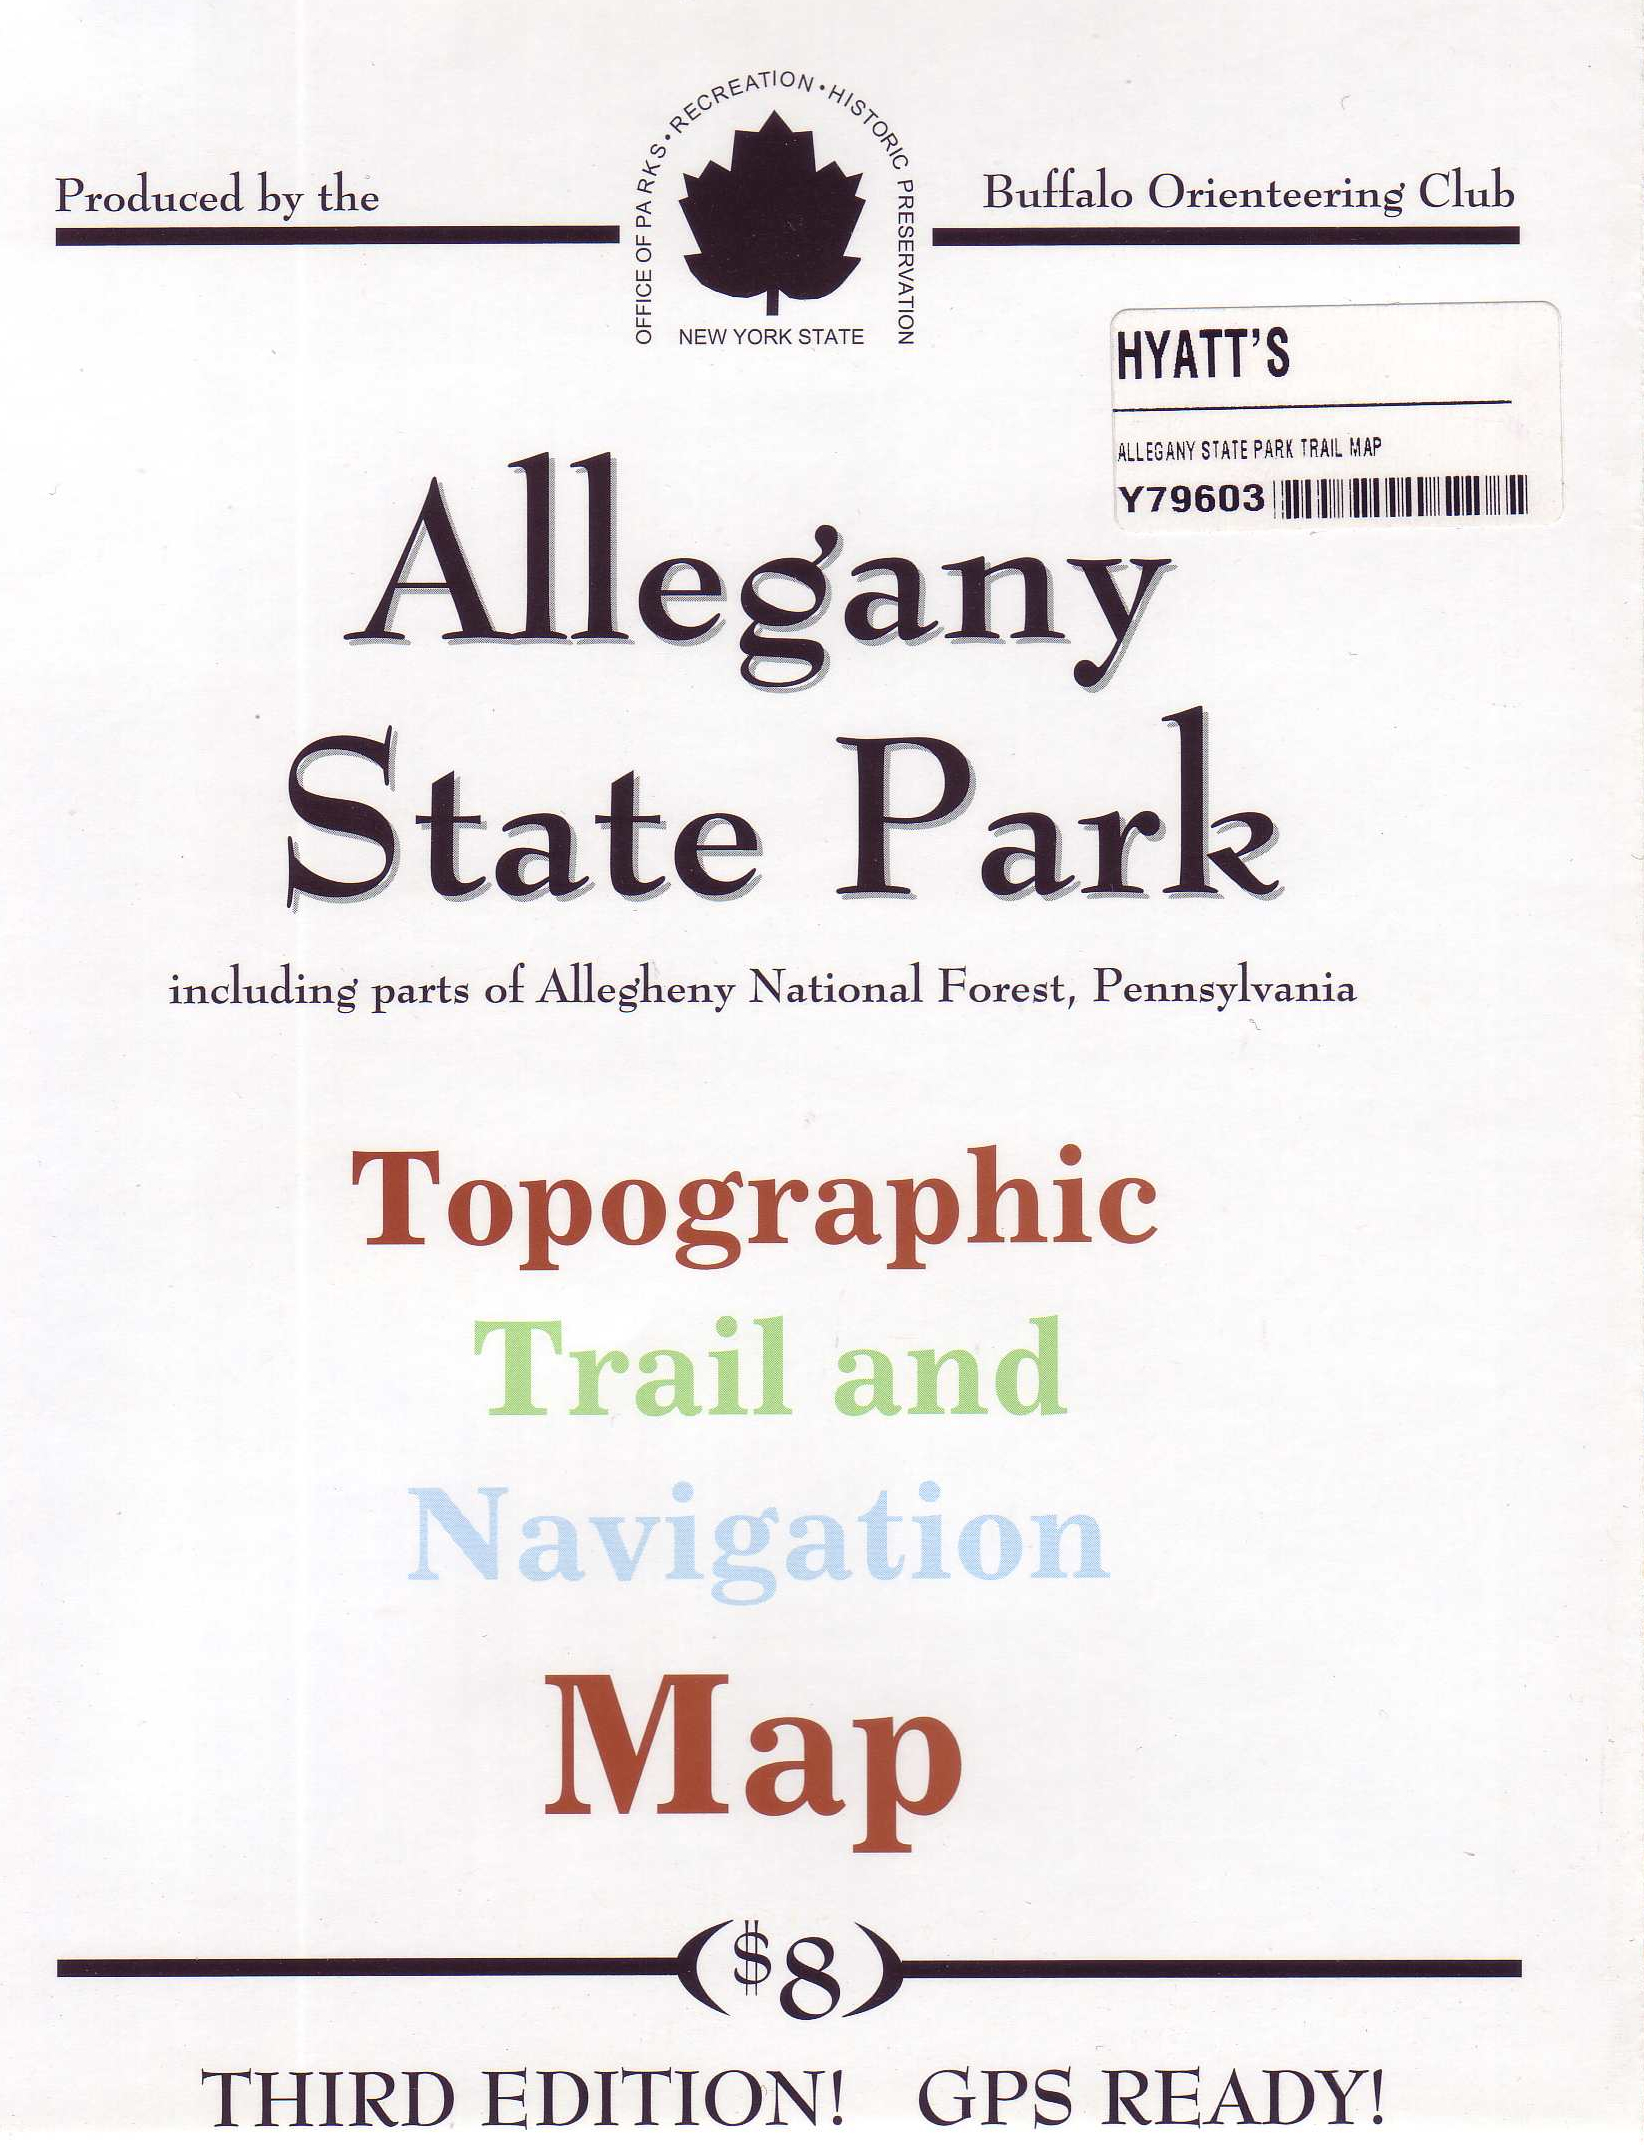 Allegany State Park Trail Map